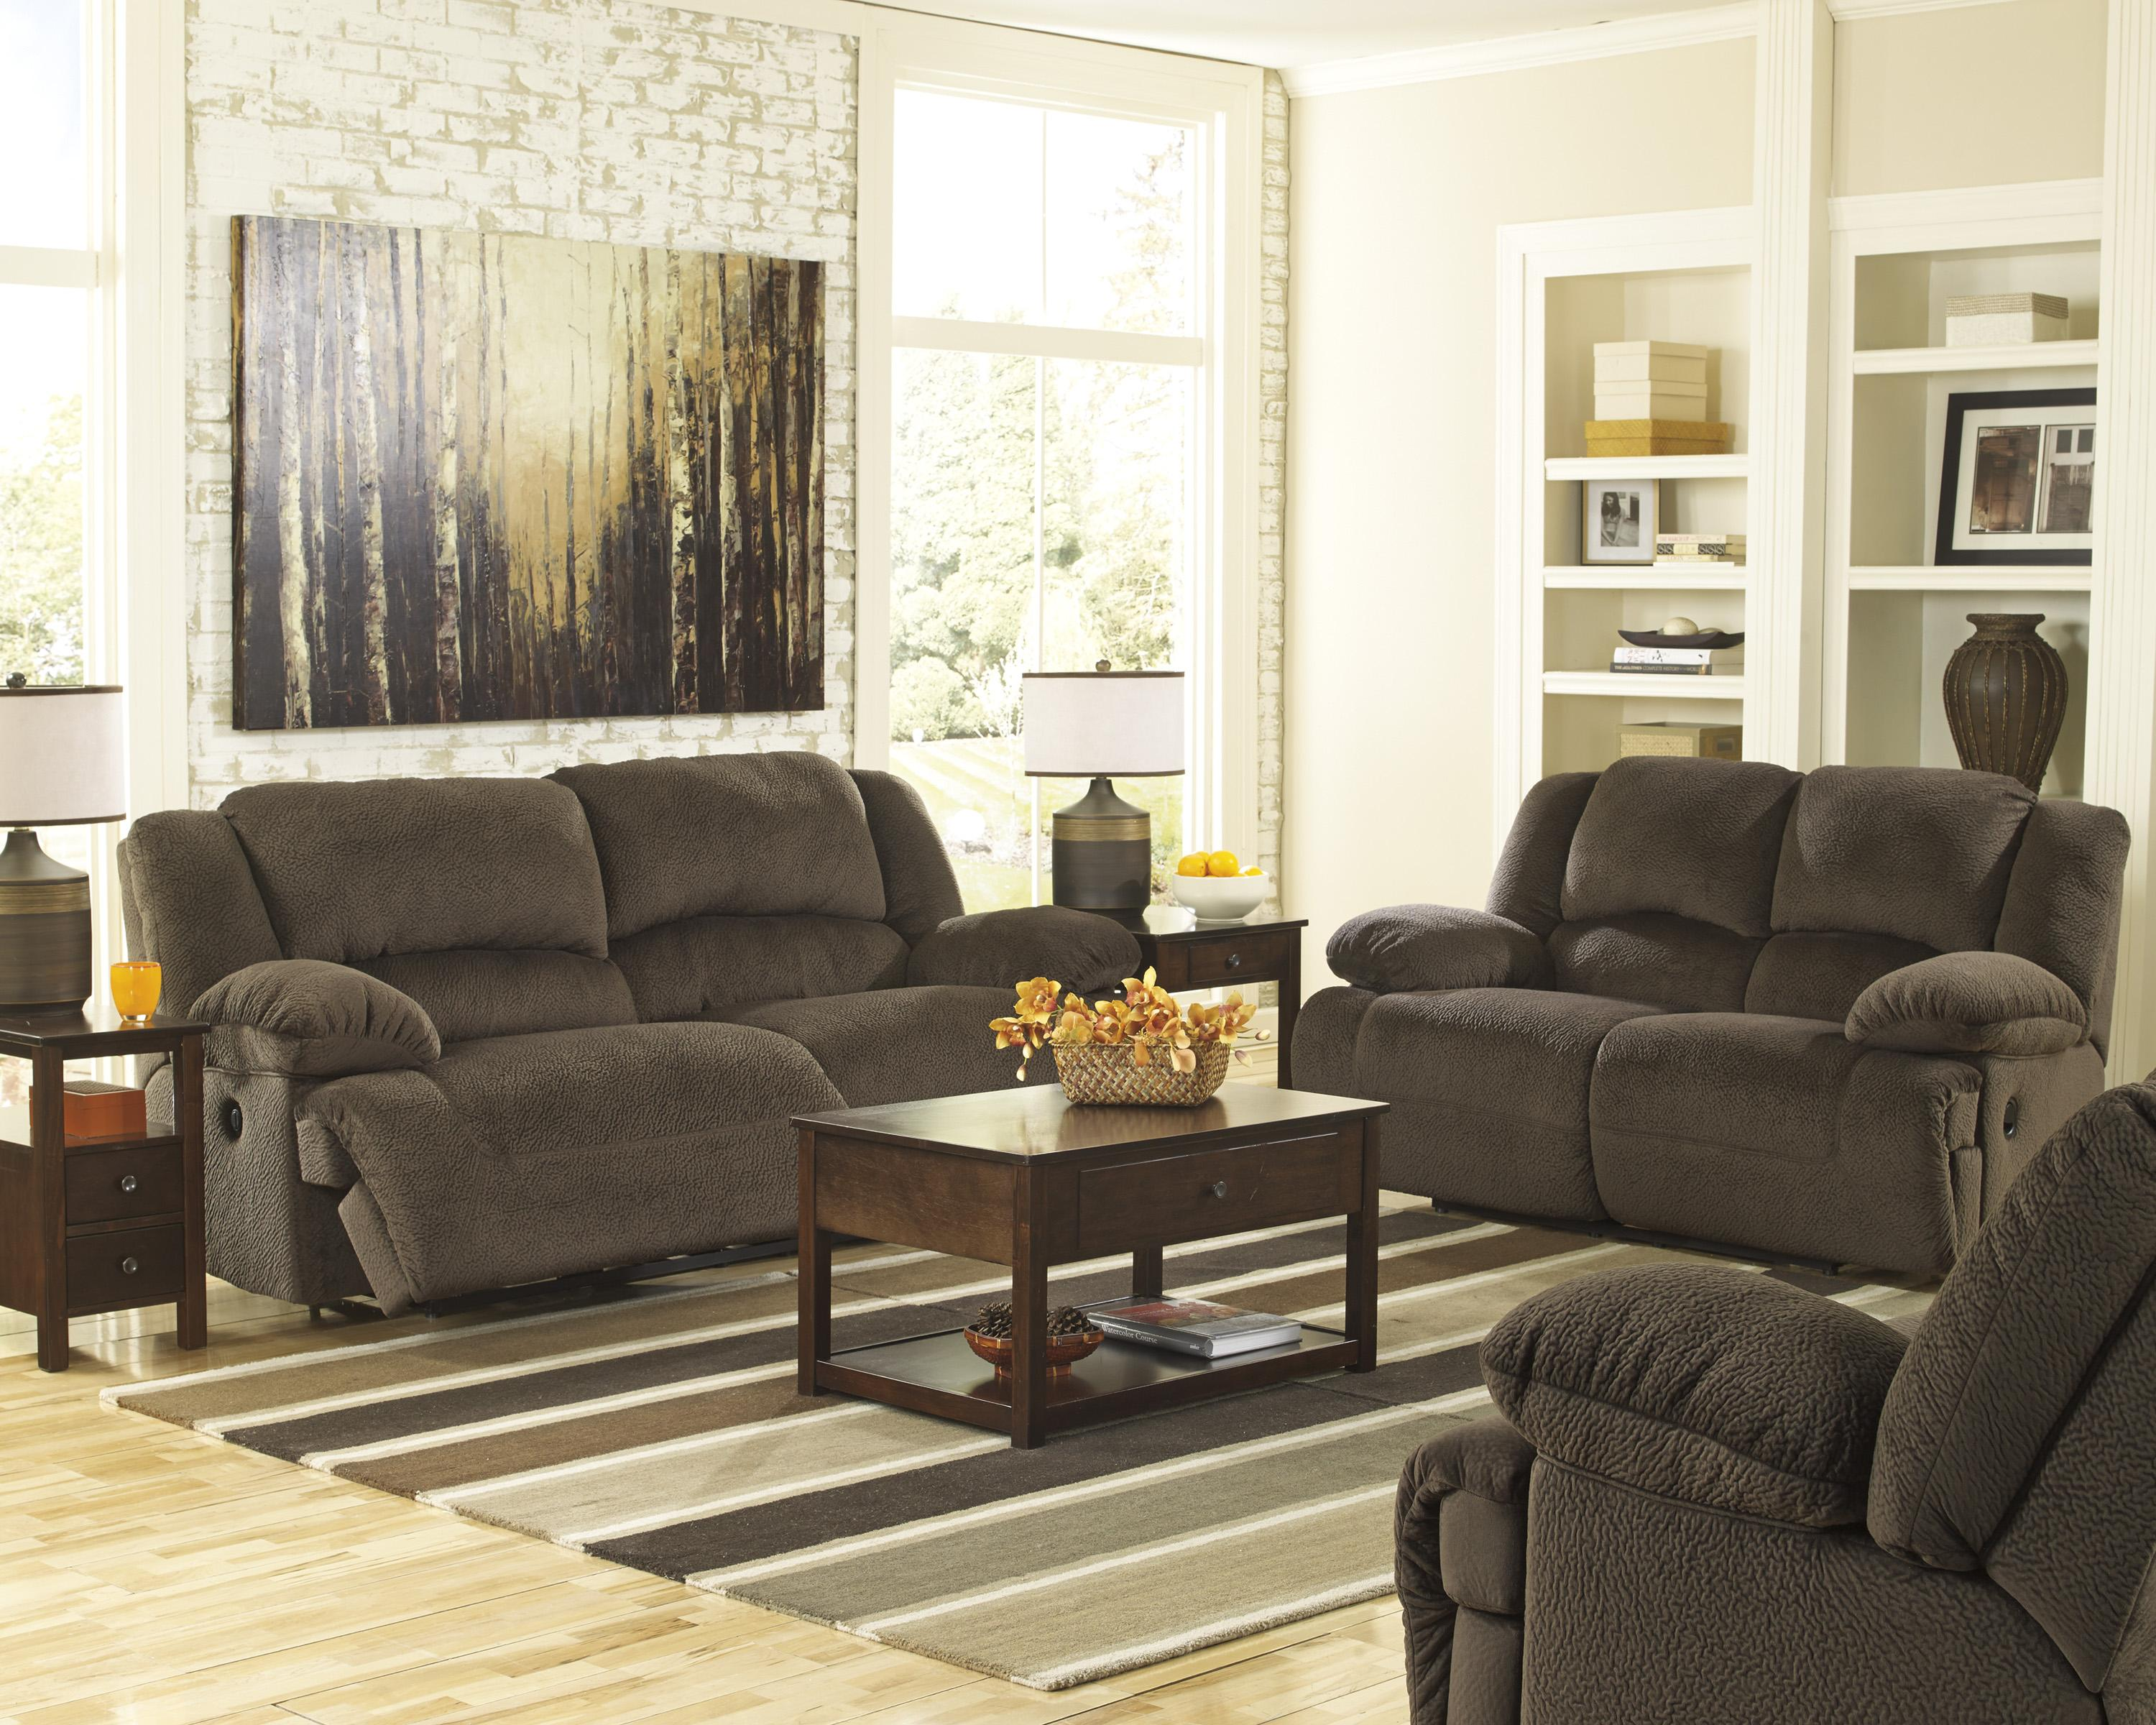 Signature Design by Ashley Toletta   Chocolate Wide Seat Power Recliner    Wayside Furniture   Three Way Recliners. Signature Design by Ashley Toletta   Chocolate Wide Seat Power